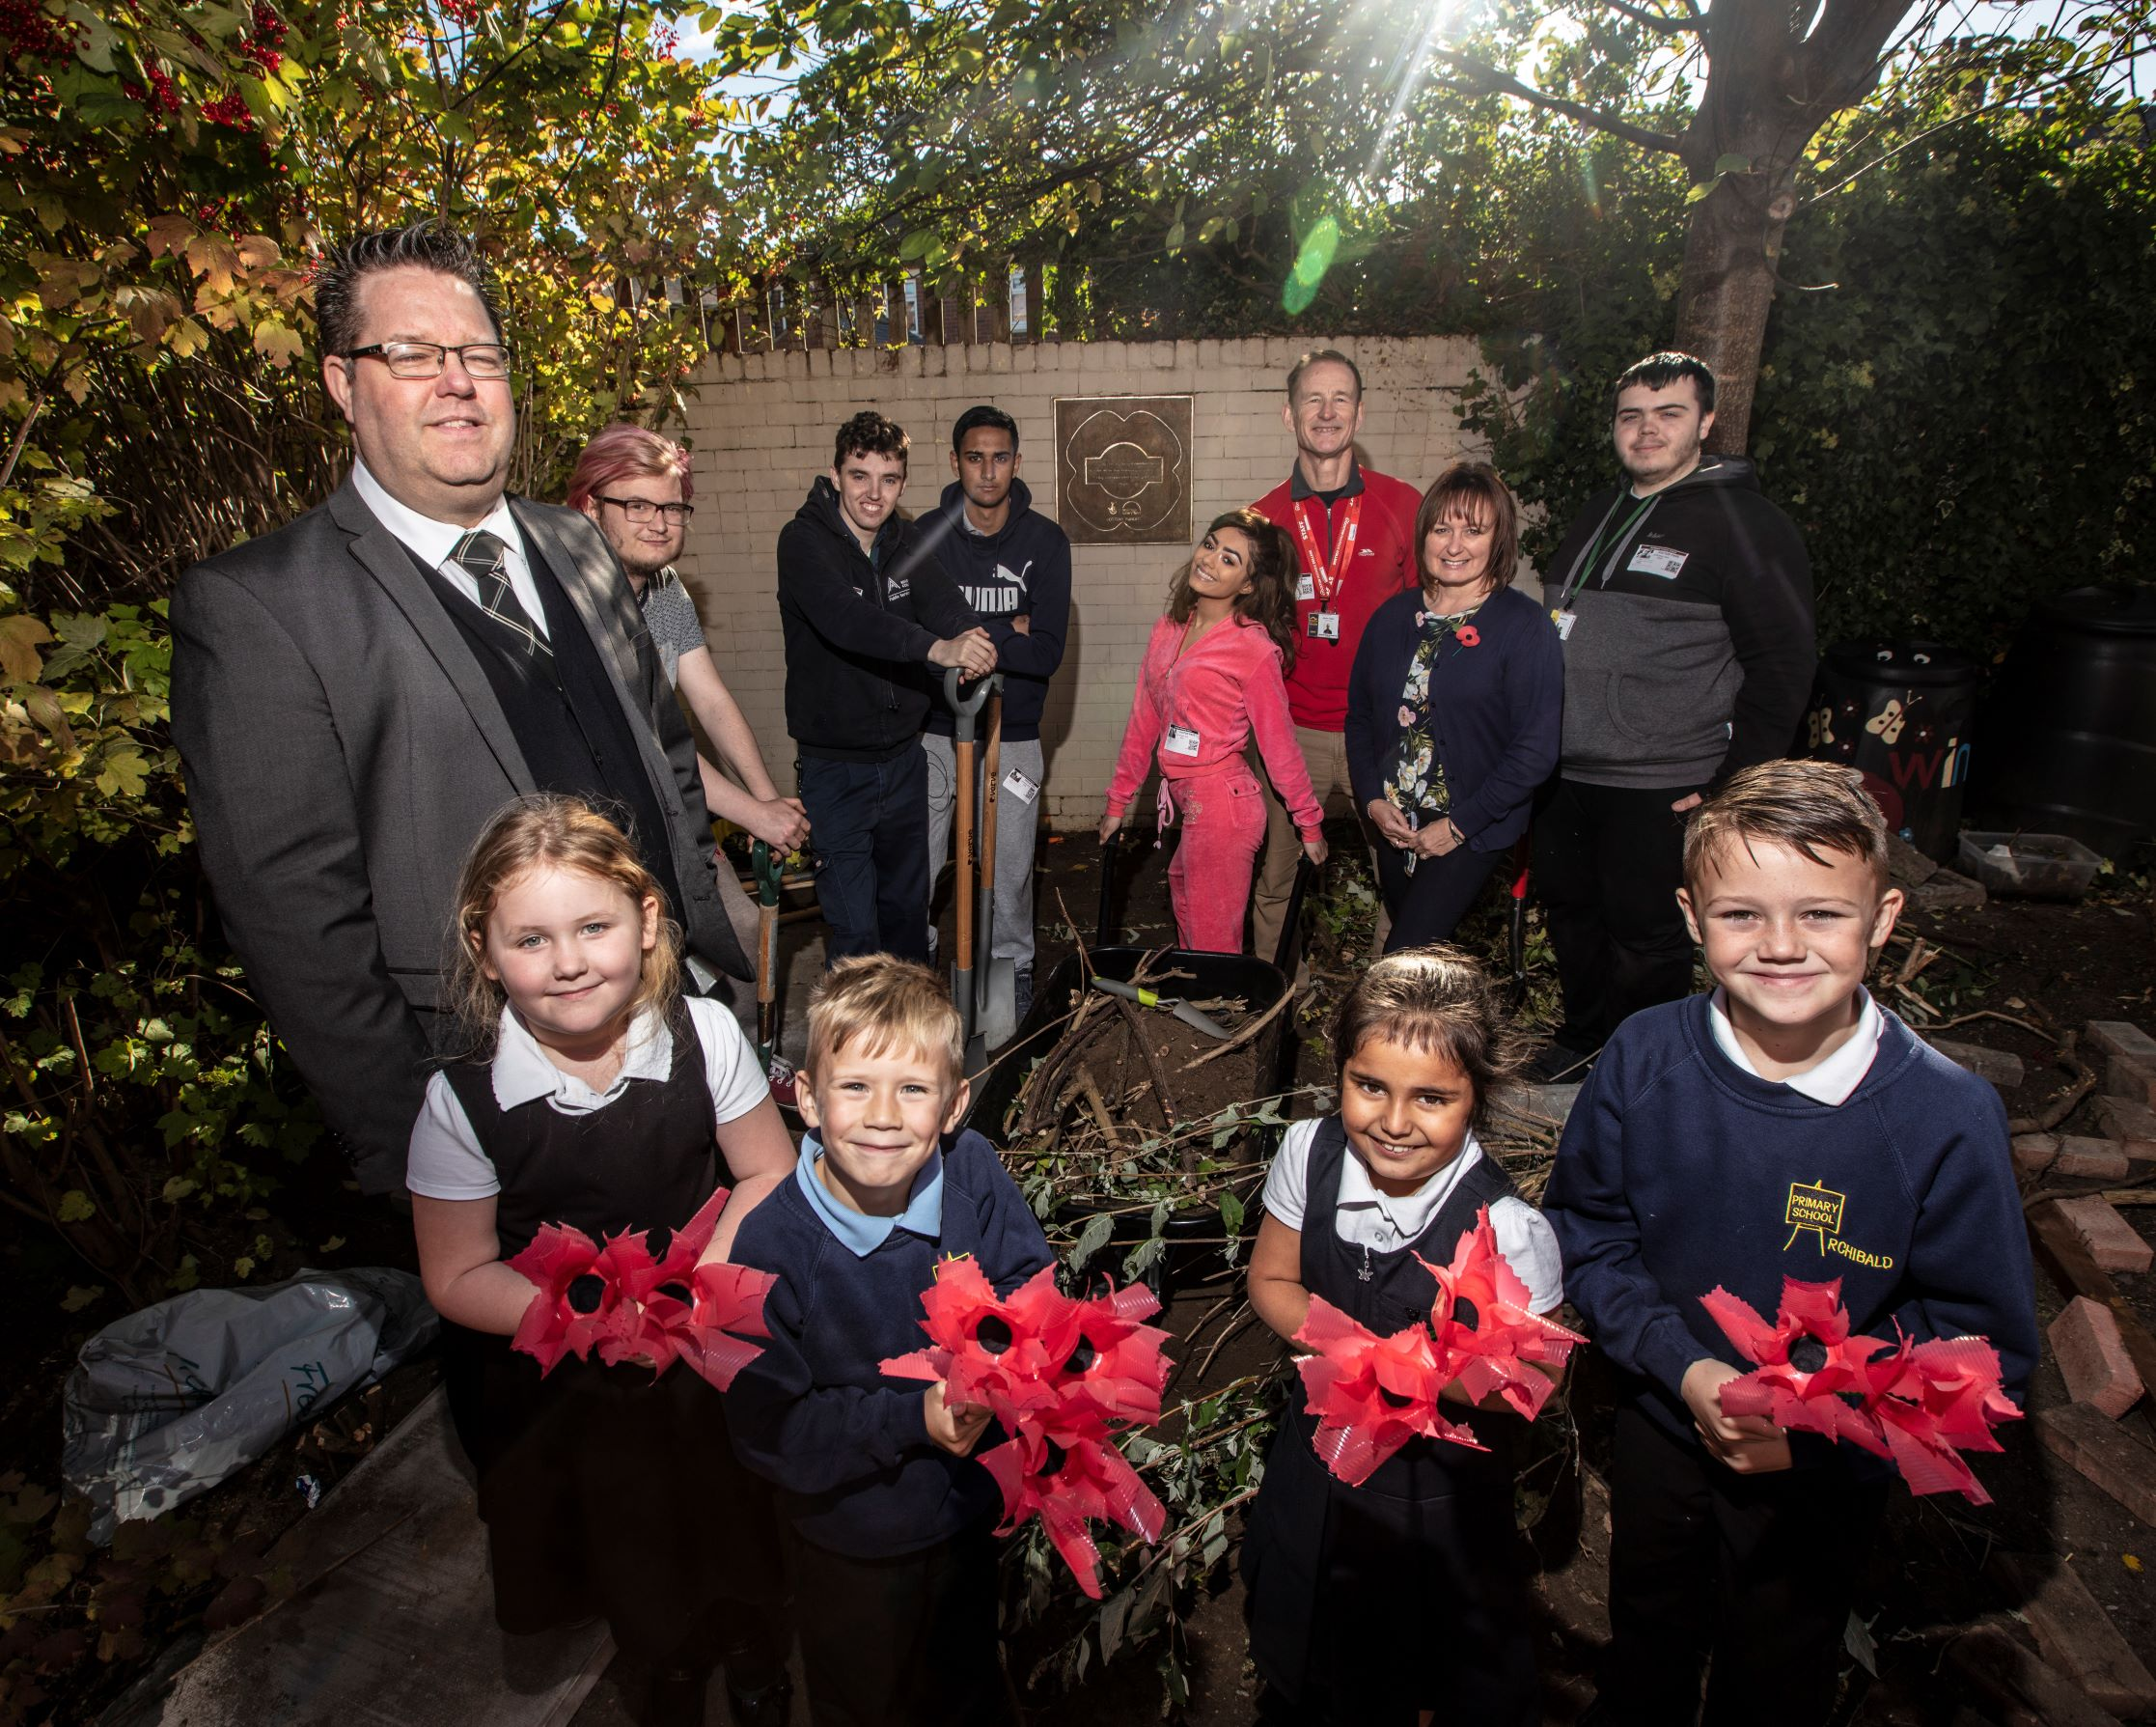 TRIBUTE: Clearing the way to the World War 1 remembrance plaque at Archibald Primary School. Front: Deputy Head Steve Cowgill with pupils and poppies they have made. Back: Diane Parker (second right) from funder UK Steel Enterprise and Team Leader Martin